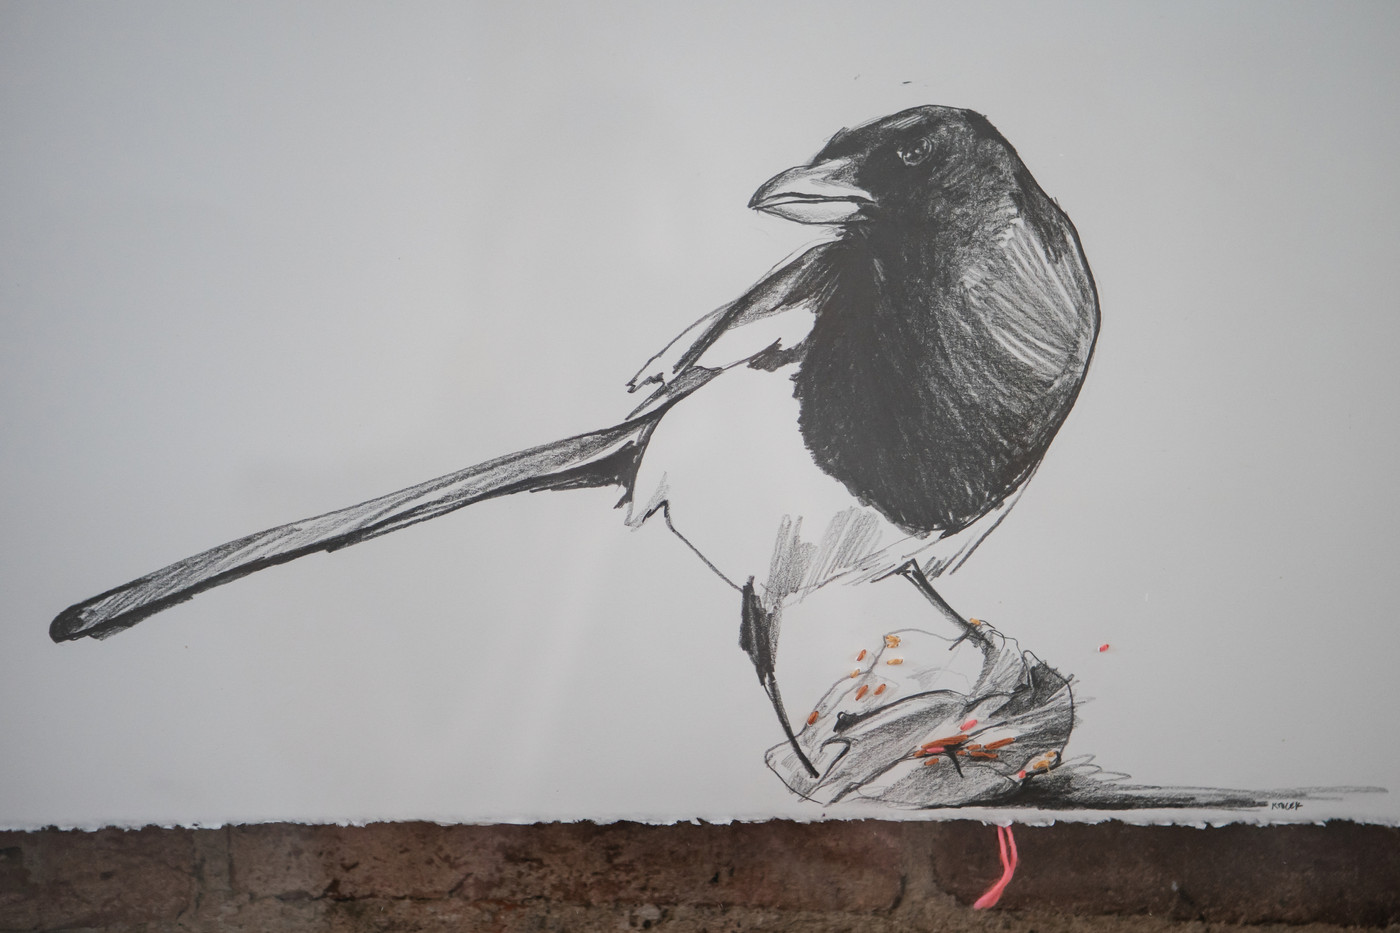 Magpie 4 with peach